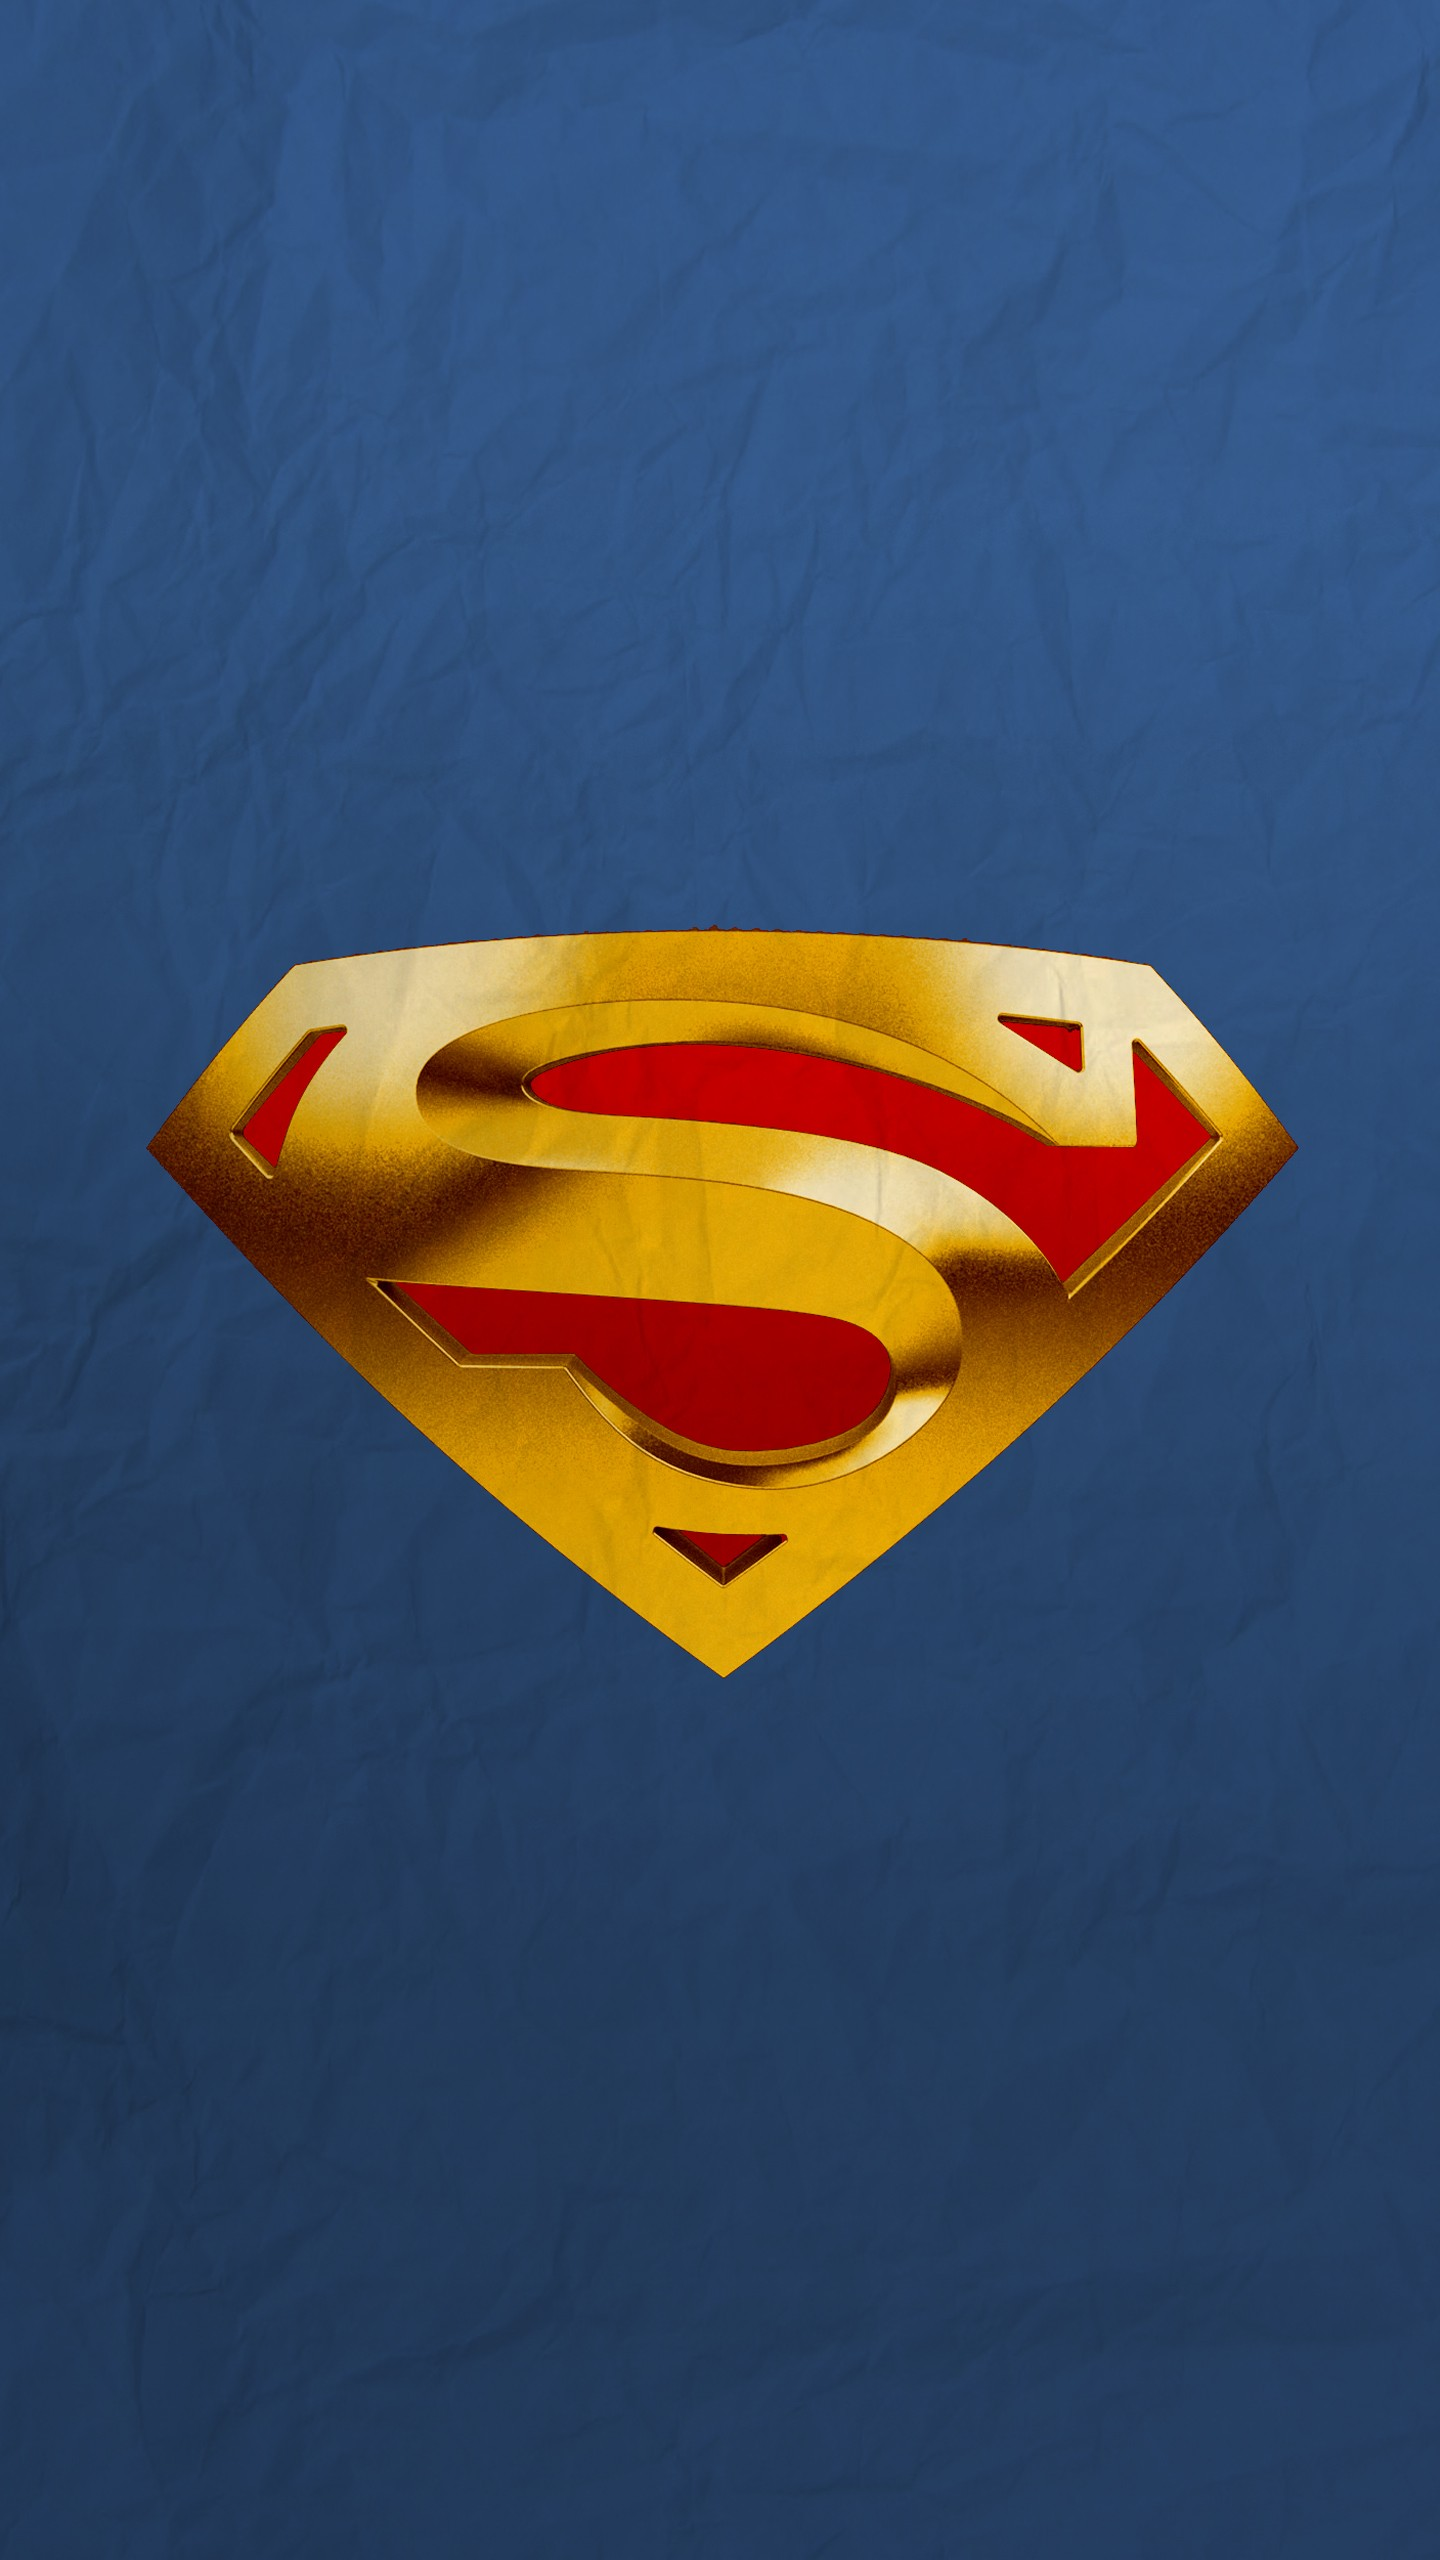 Superhero wallpaper 16 1440x2560 - Superhero iphone wallpaper hd ...